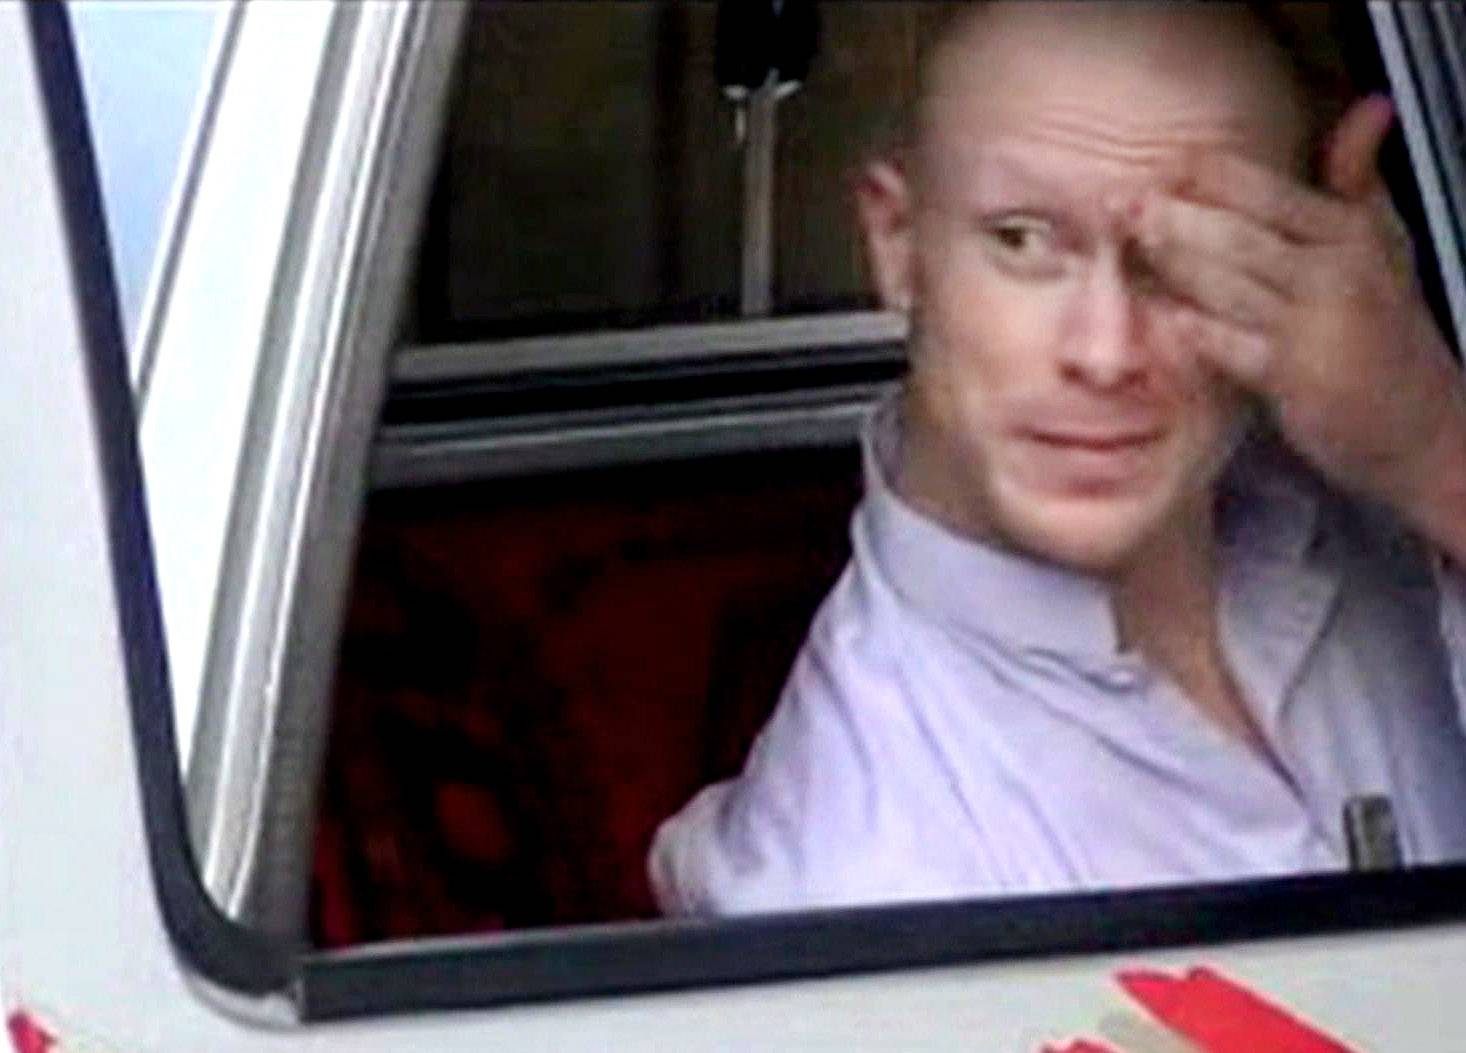 Once released from captivity, a soldier like Sgt. Bowe Bergdahl enters a series of debriefings and counseling sessions, all carefully orchestrated by the U.S. military, to ease the soldier back into normal life.